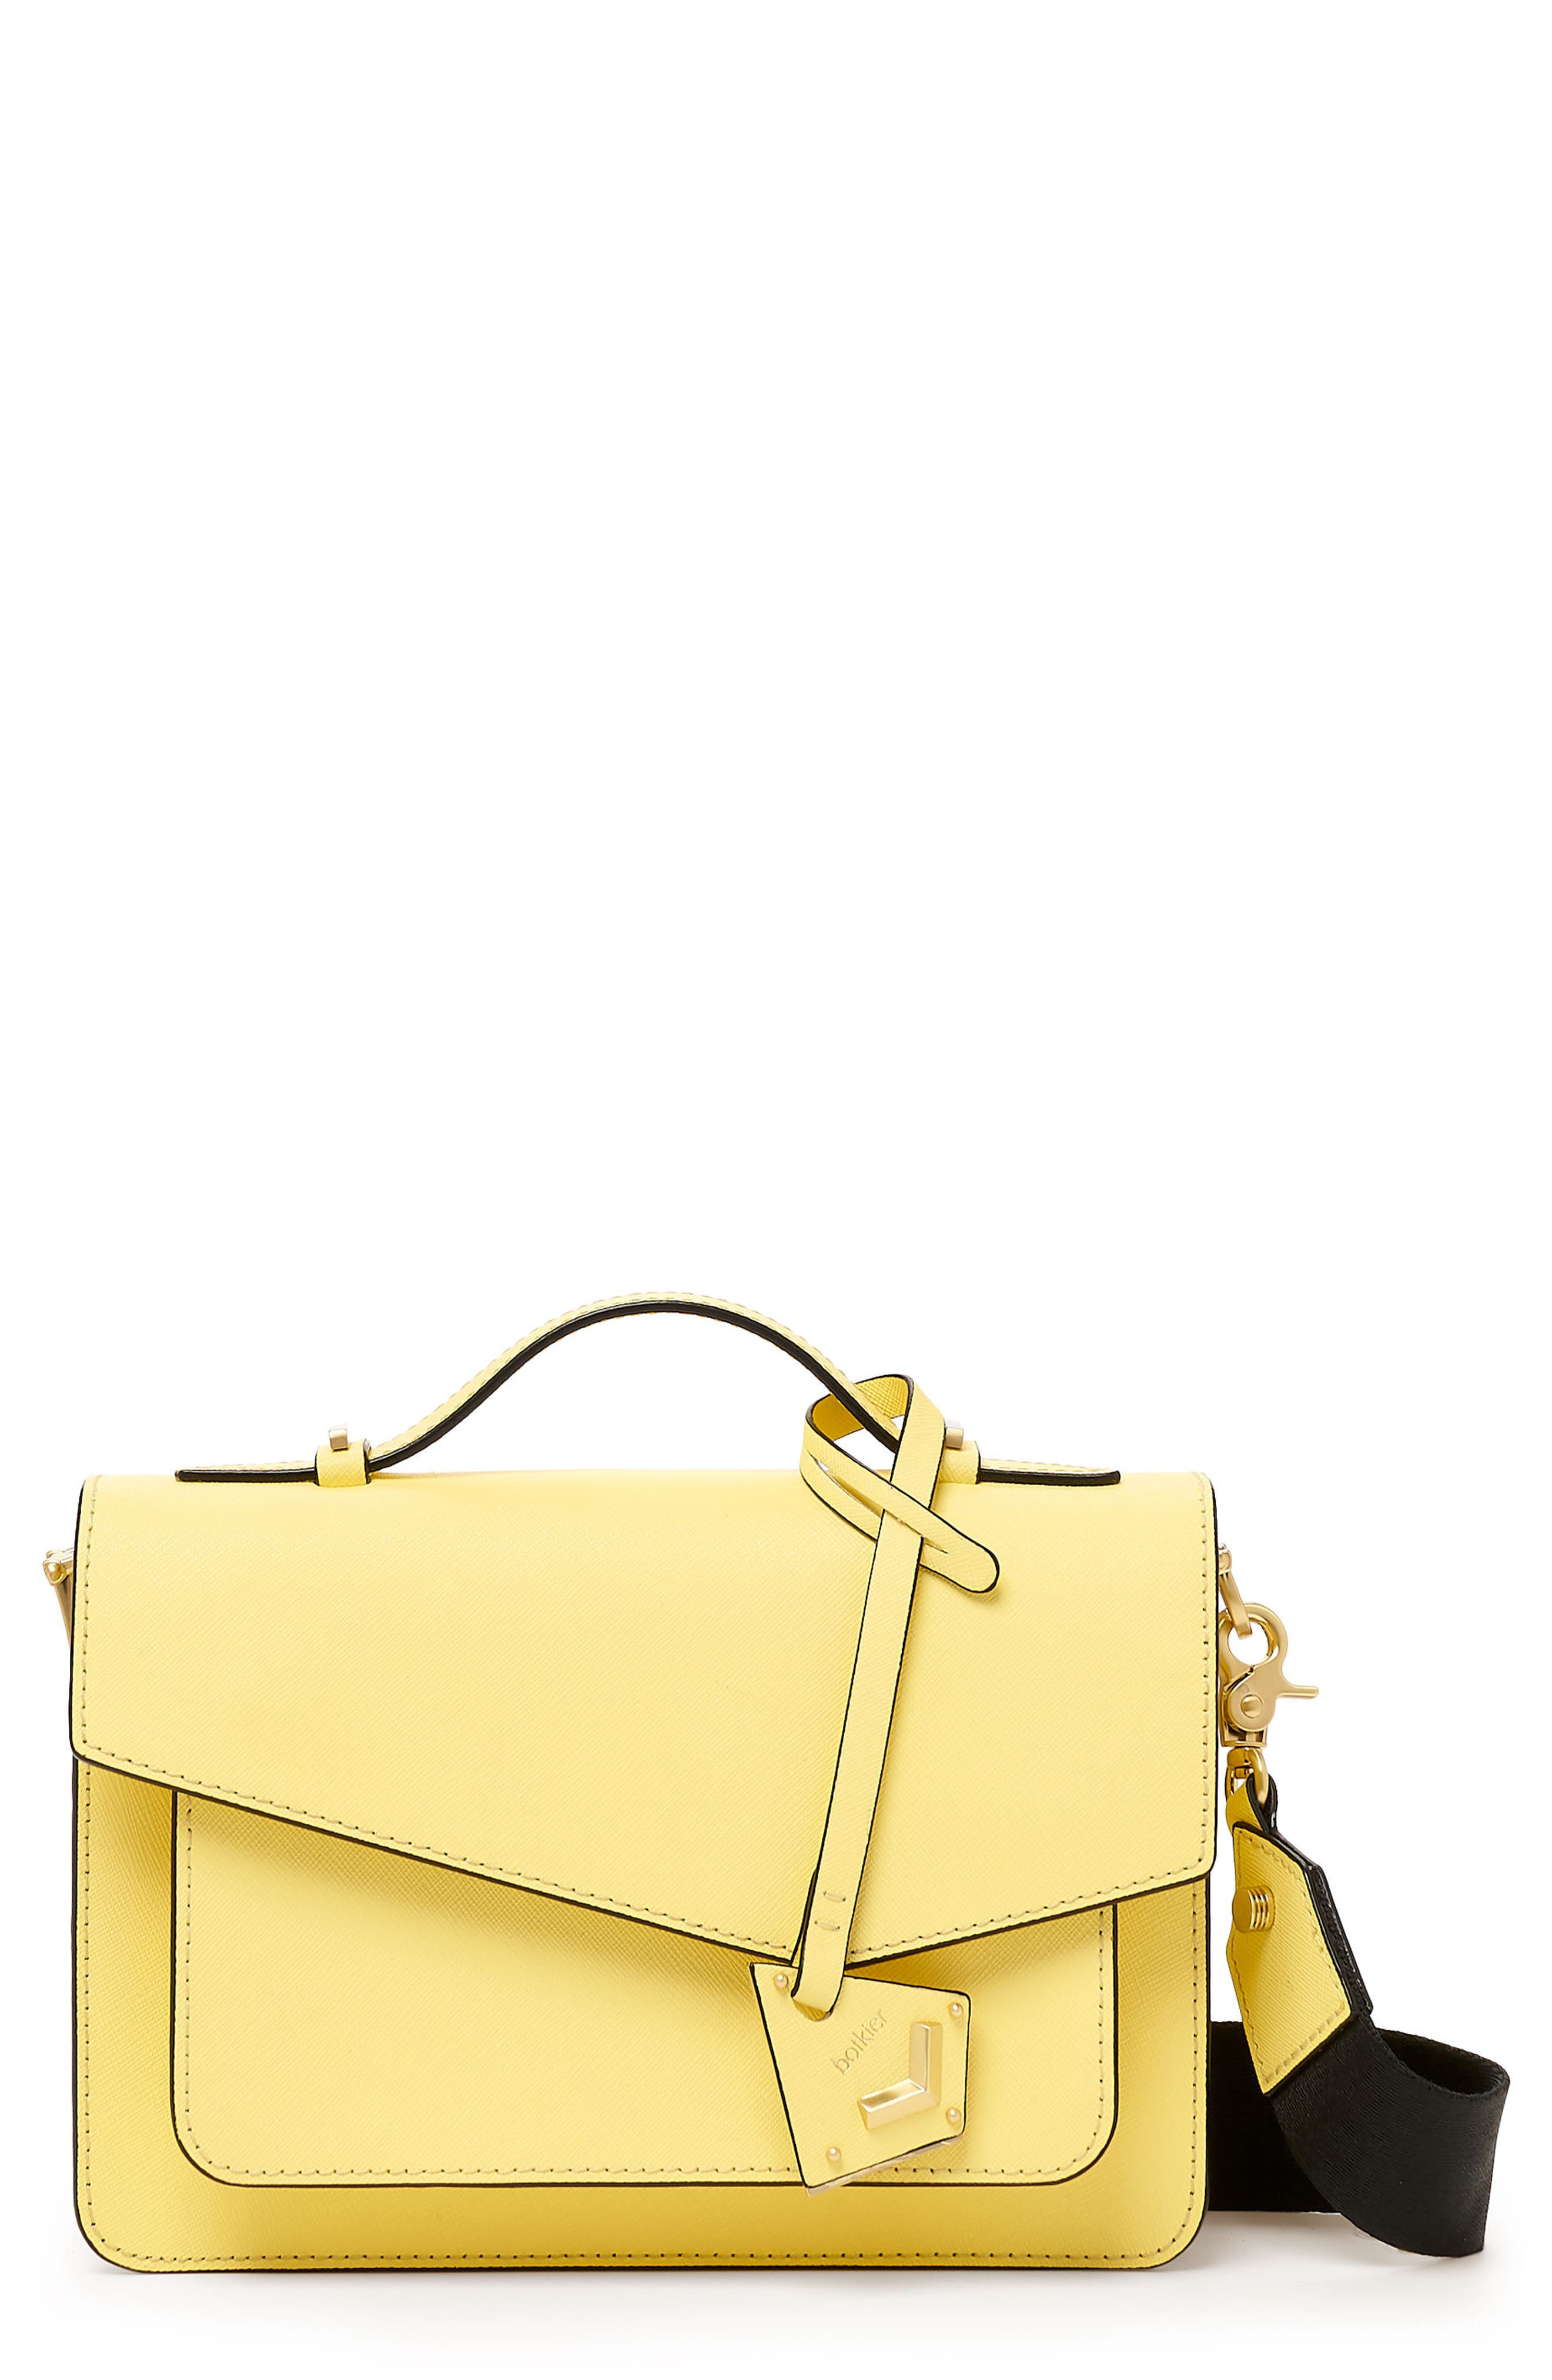 COBBLE HILL LEATHER CROSSBODY BAG - YELLOW